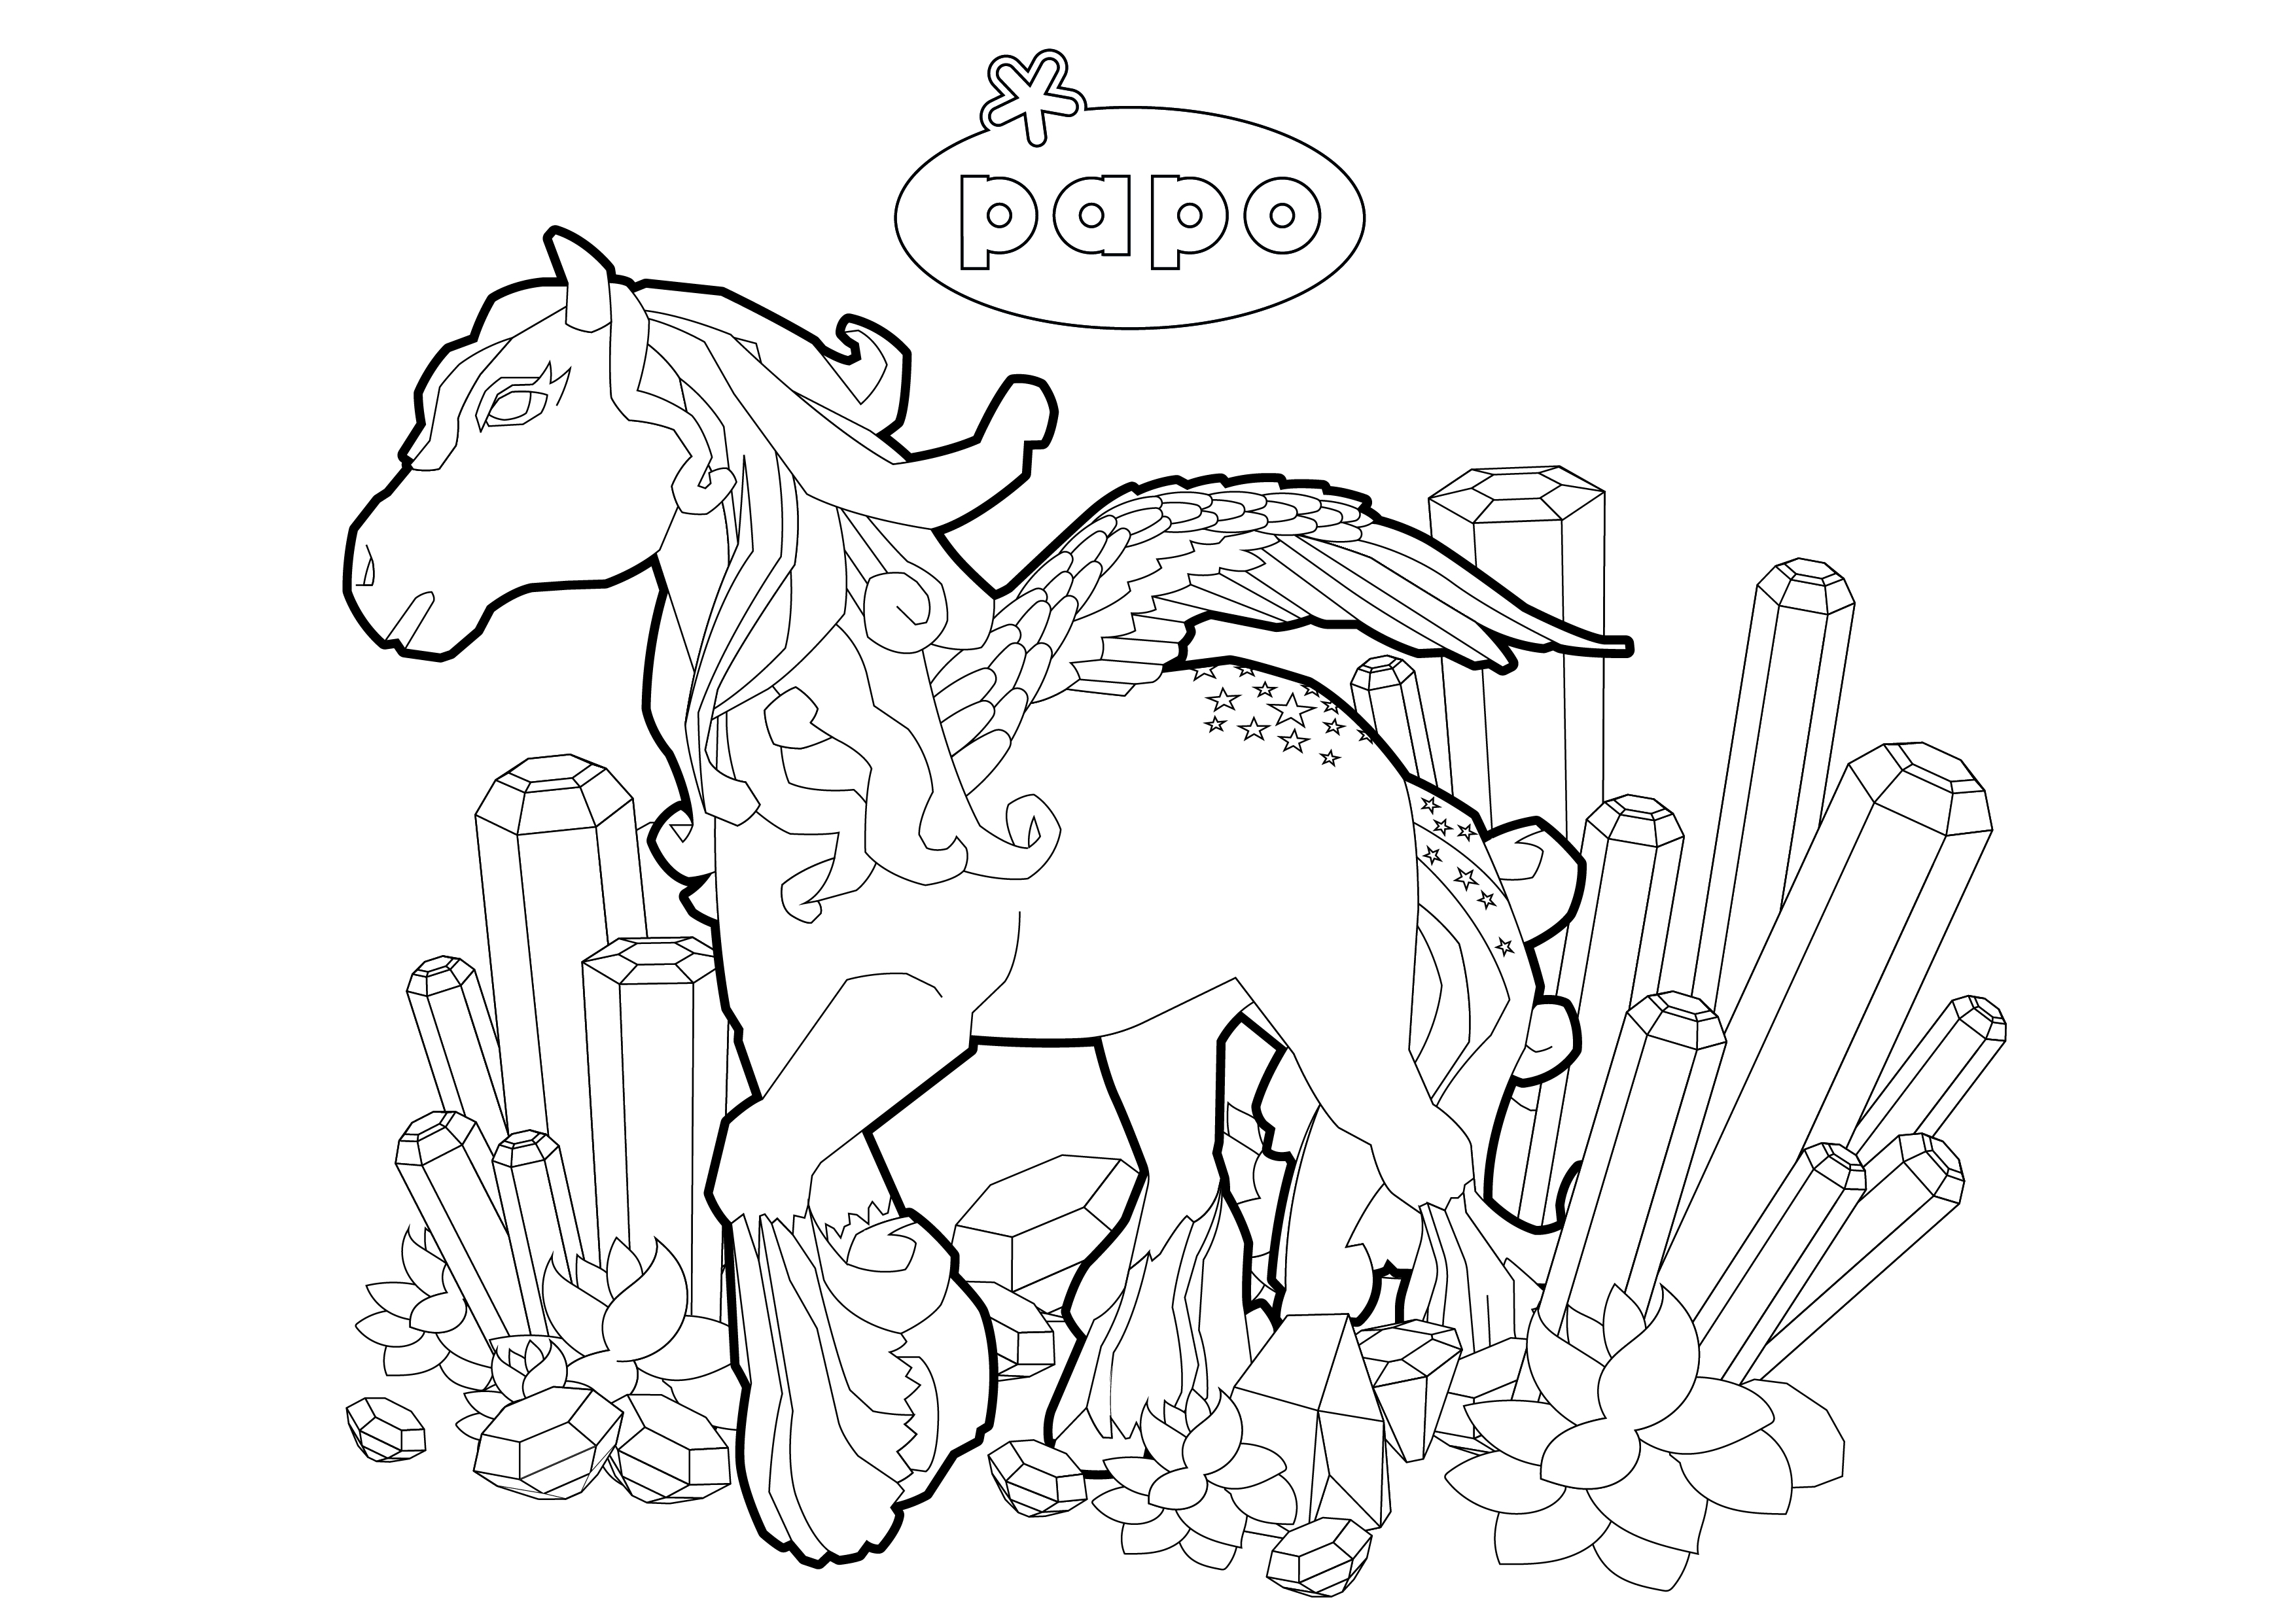 PAPO_2019-Tales-coloriage-01.jpg